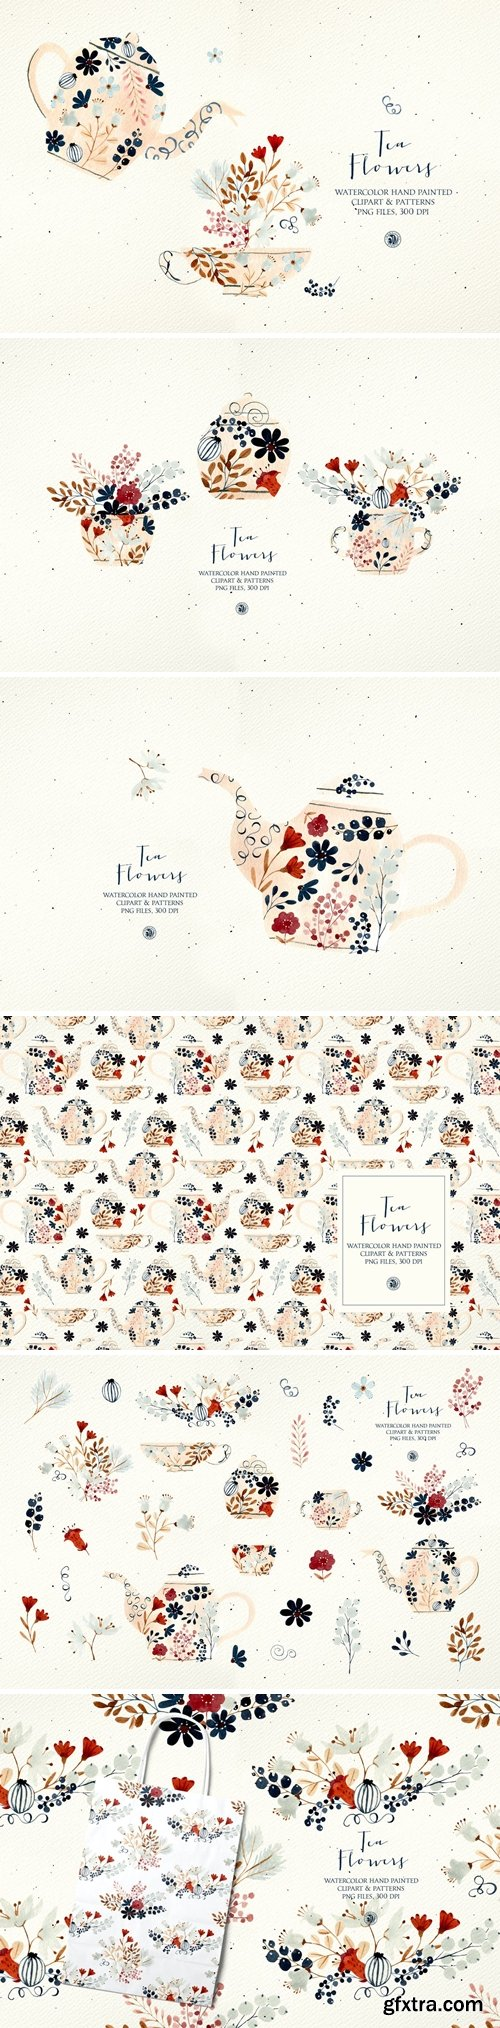 Tea Flowers - watercolor set and patterns